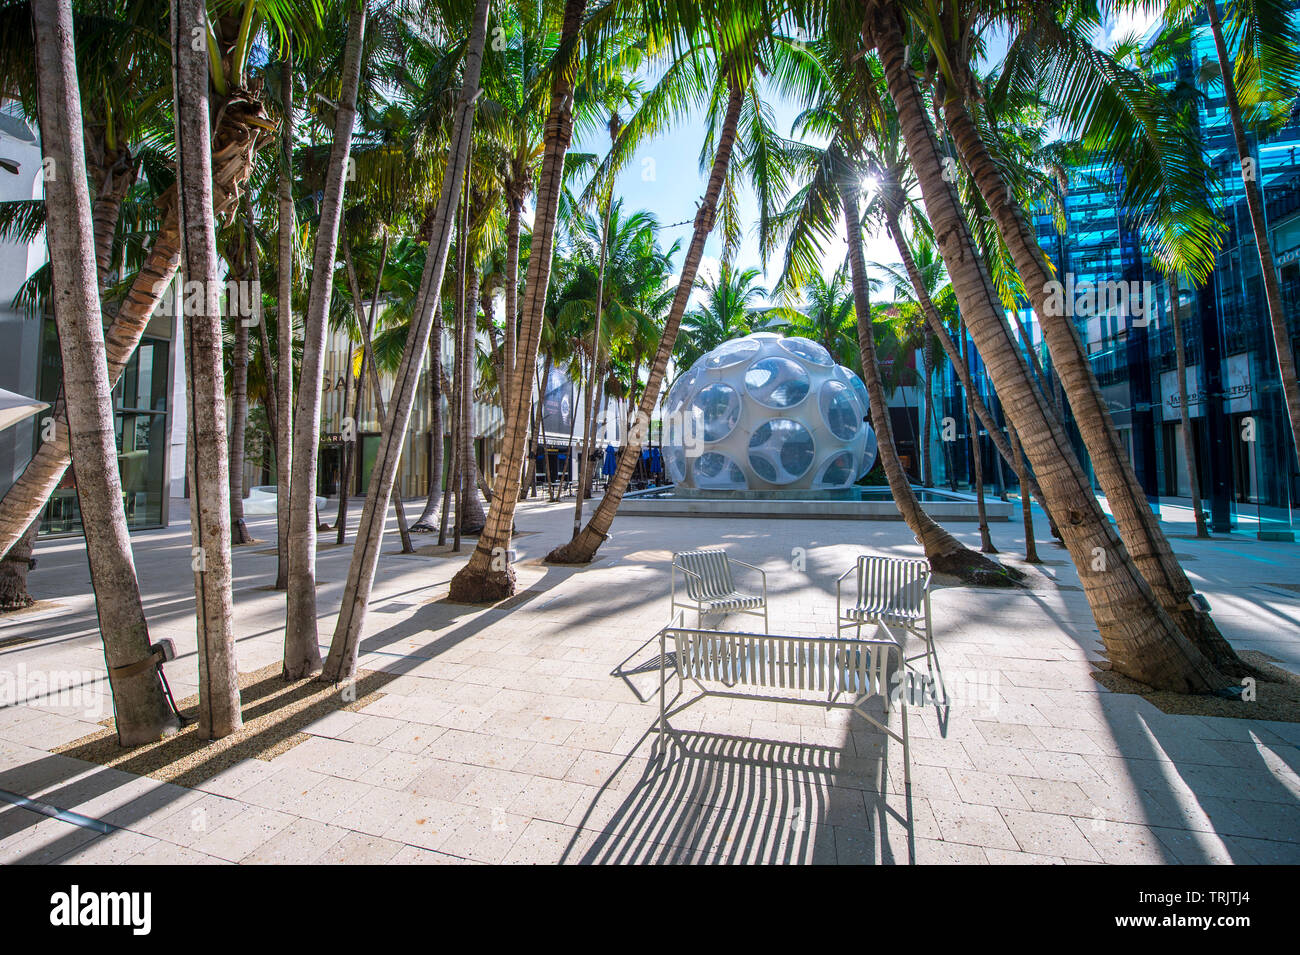 MIAMI - SEPTEMBER, 2018: Palm trees surround a modern re-creation of Buckminster Fuller's Fly's Eye Dome, a parking entrance in the Design District. Stock Photo